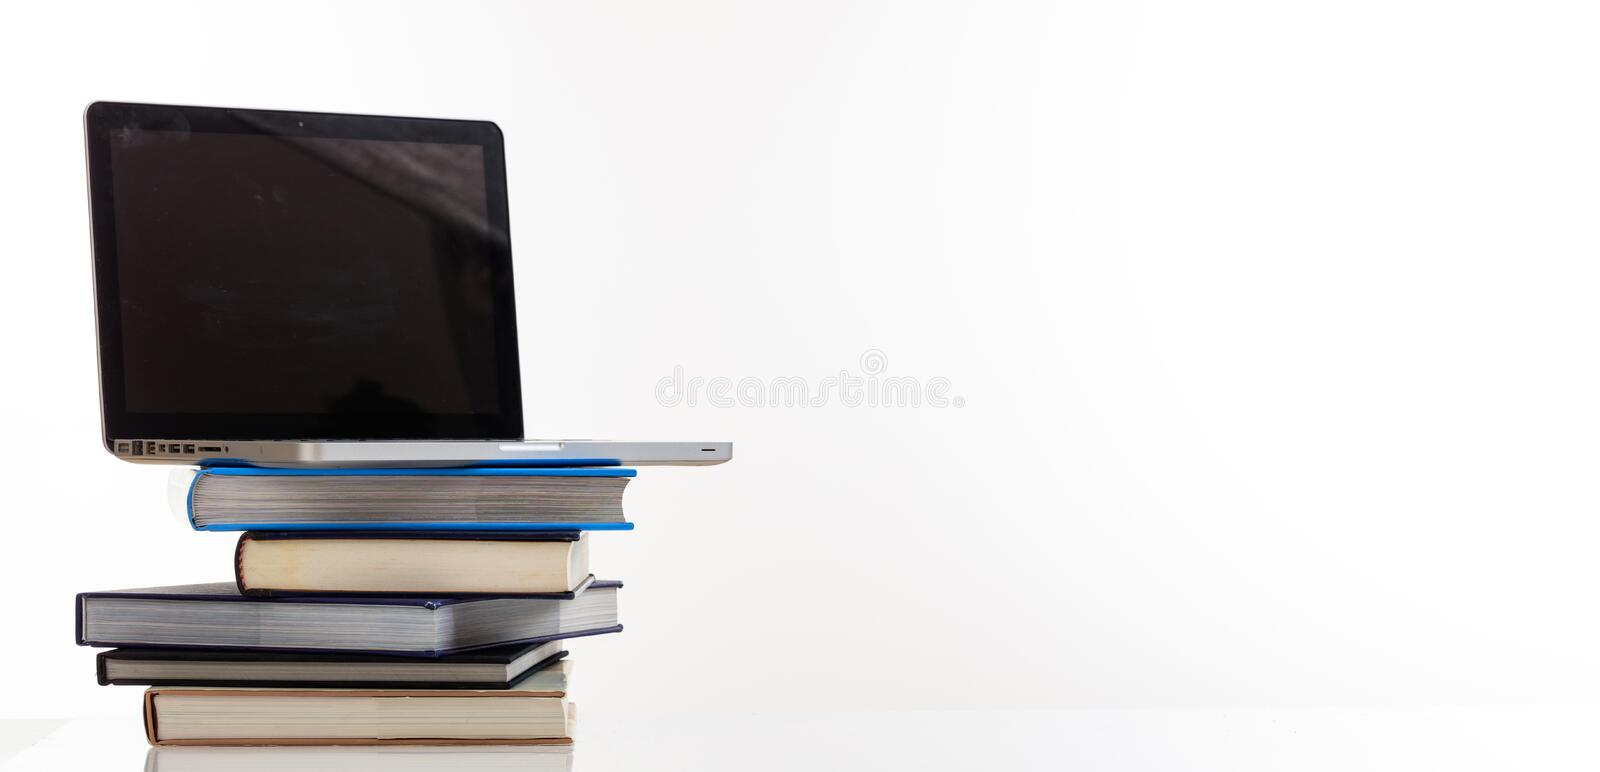 Books stack and a laptop on white background royalty free stock photo